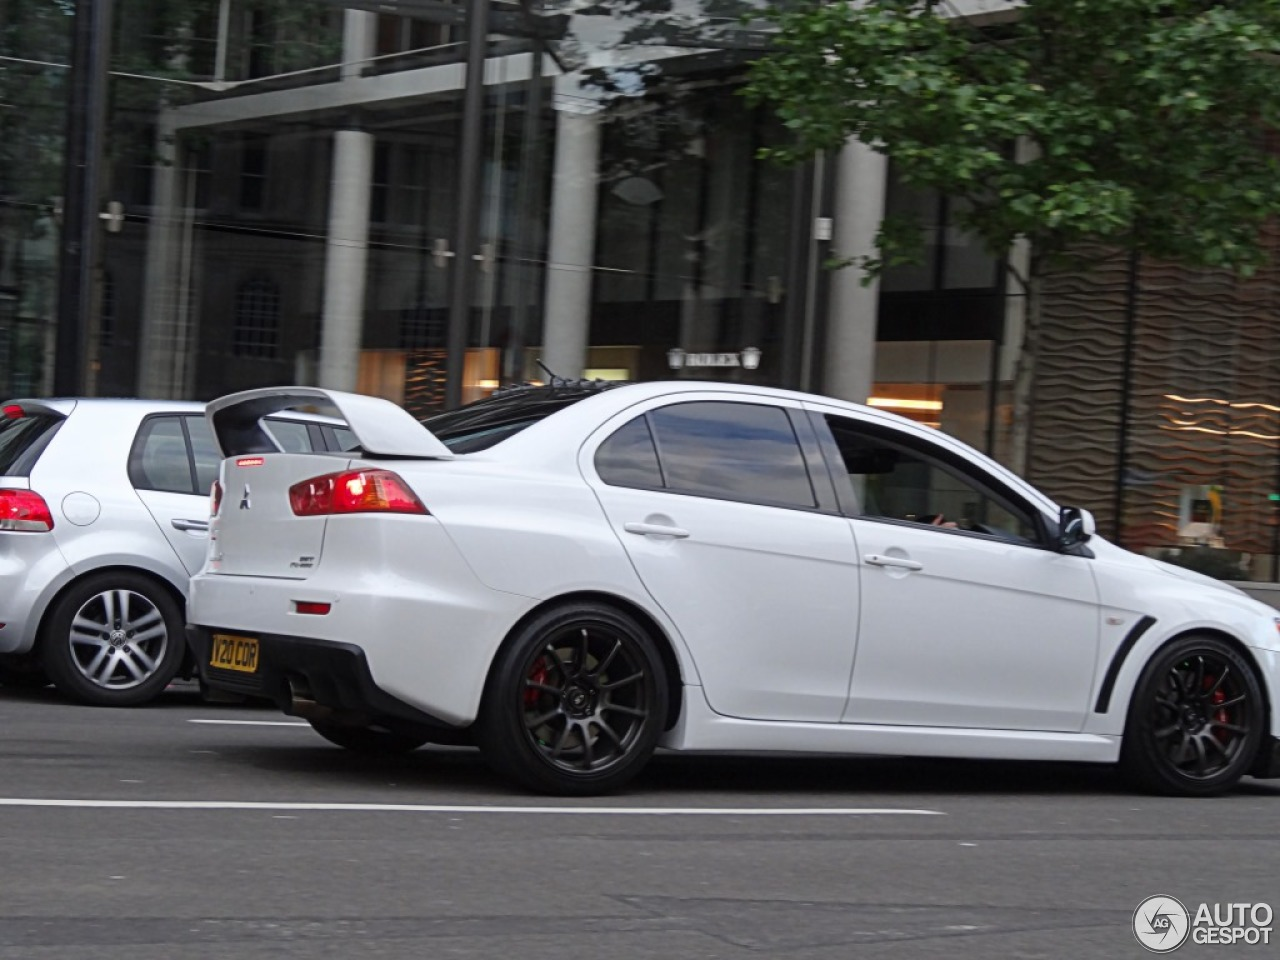 Mitsubishi Lancer Evolution X GSR FQ-300 - 19 August 2013 - Autogespot